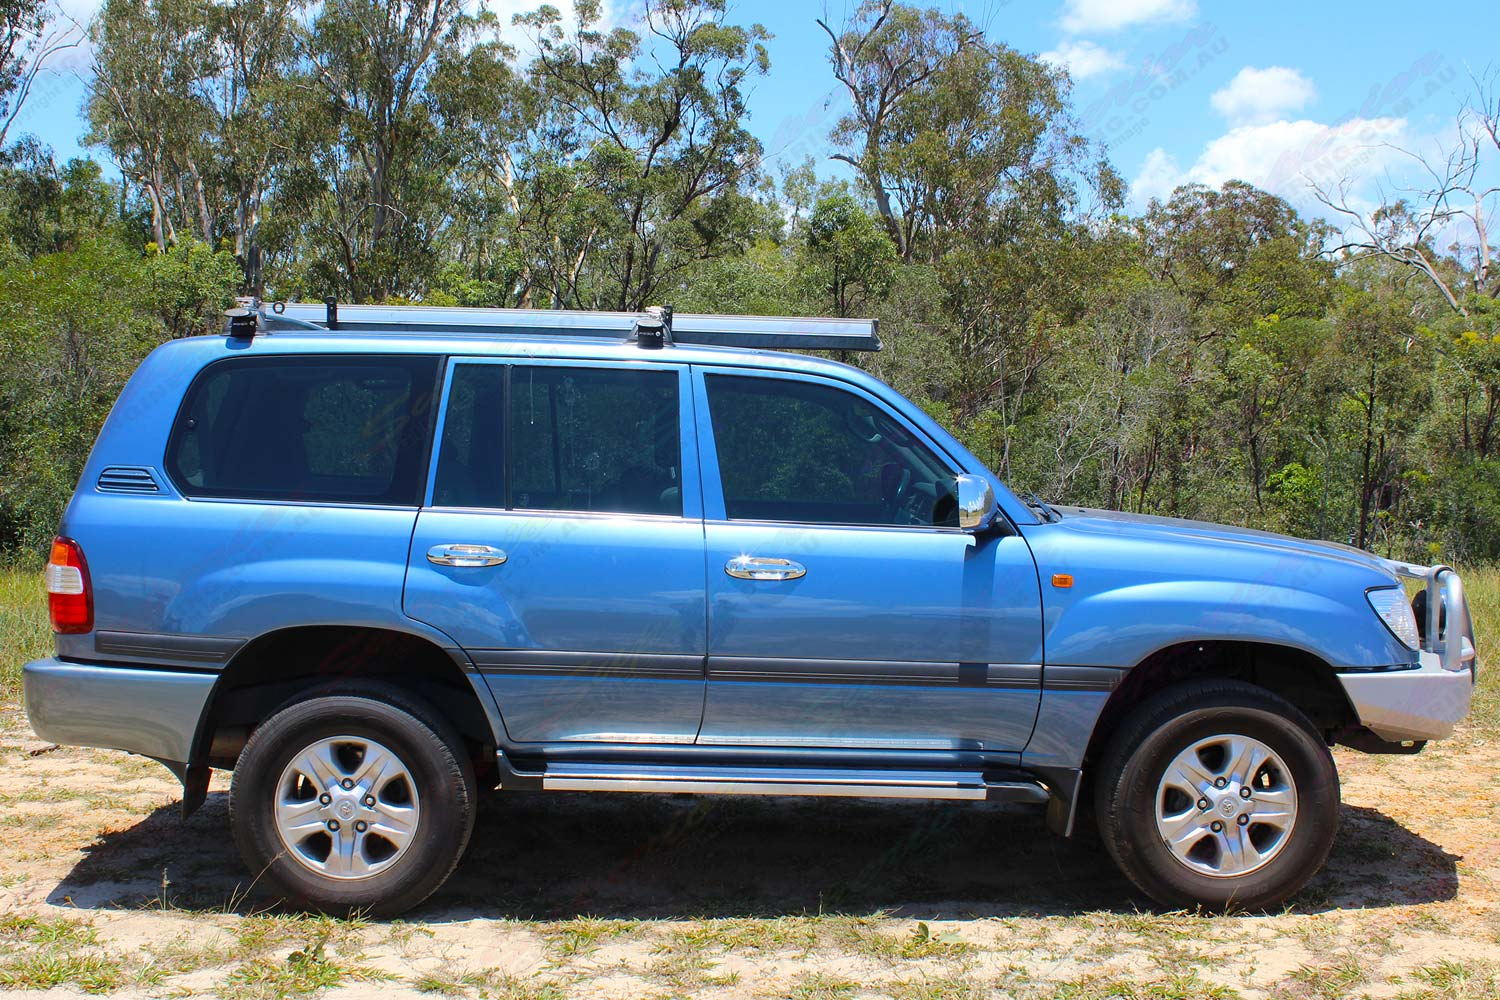 Toyota Landcruiser 100 Series Wagon Blue 64771 Superior Customer Lift Kits Right Side View Of A After Being Fitted With Premium